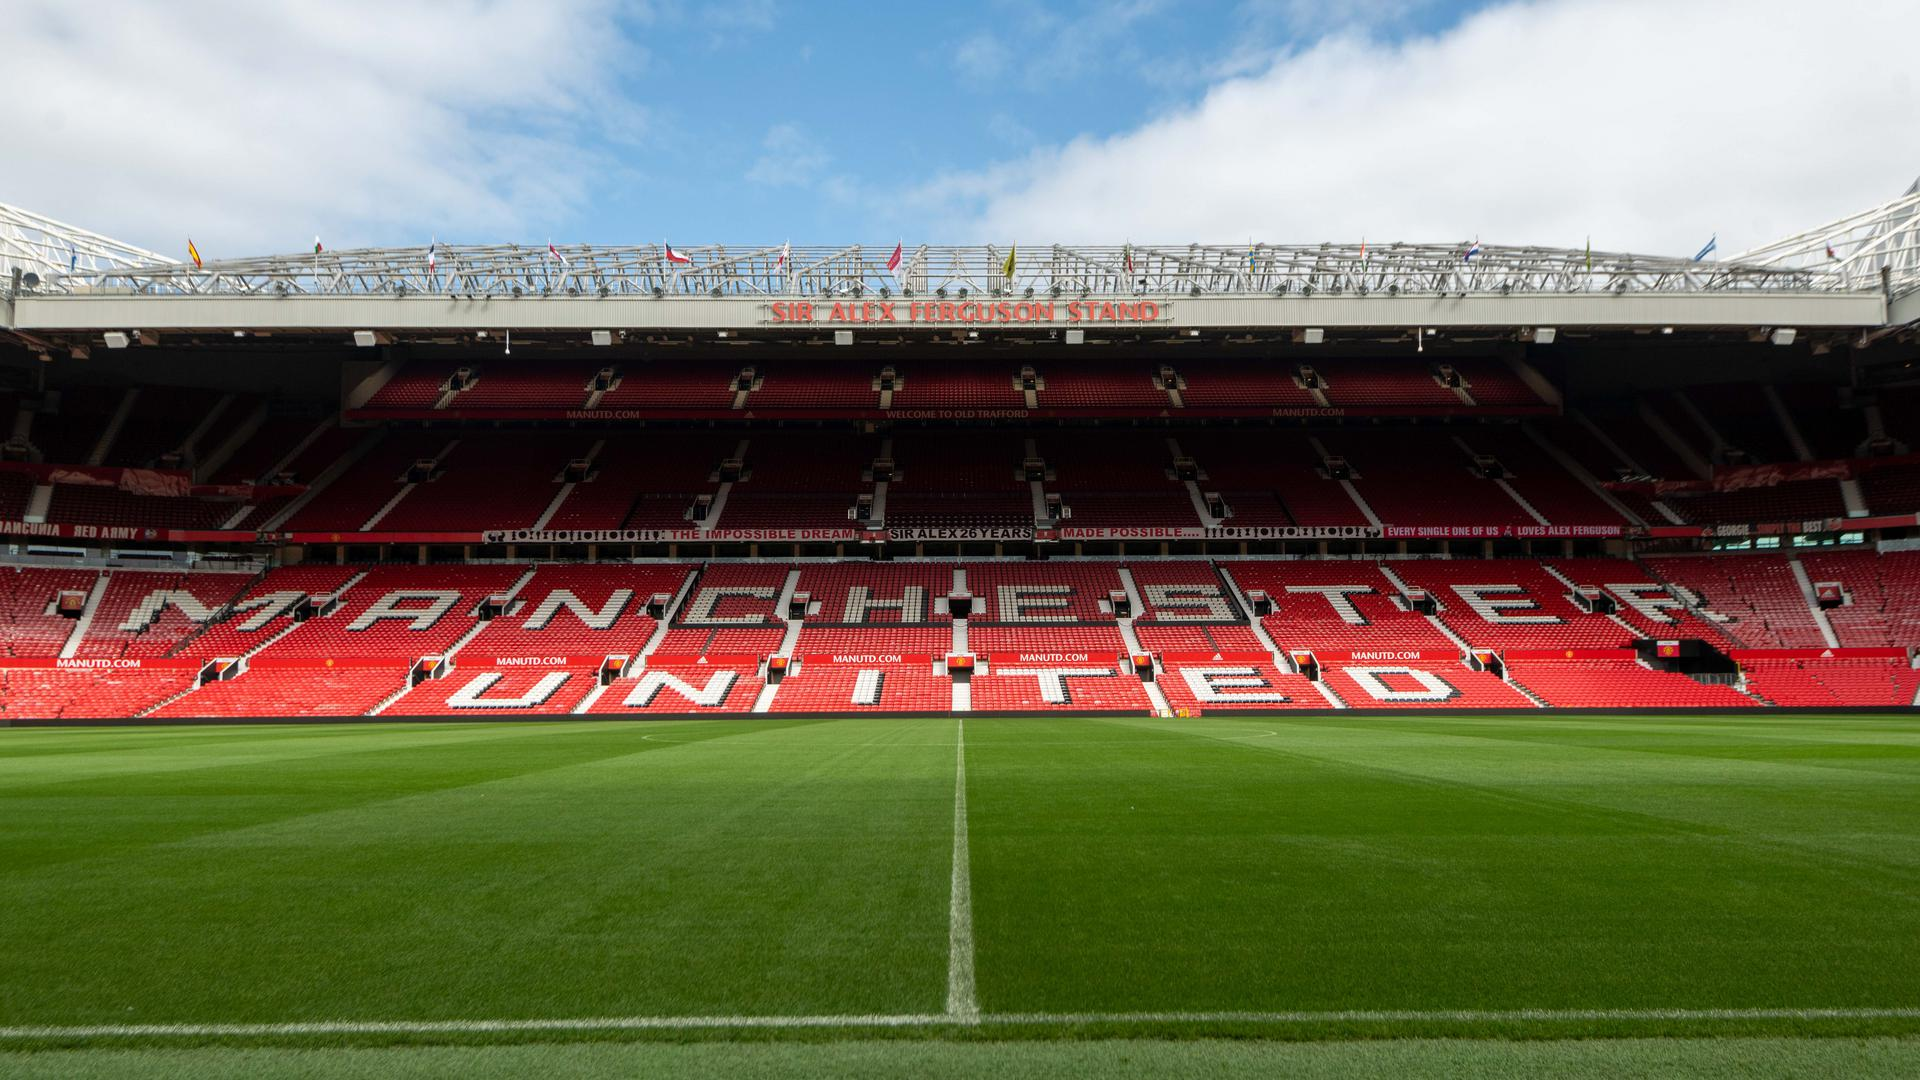 Inside shot of Old Trafford